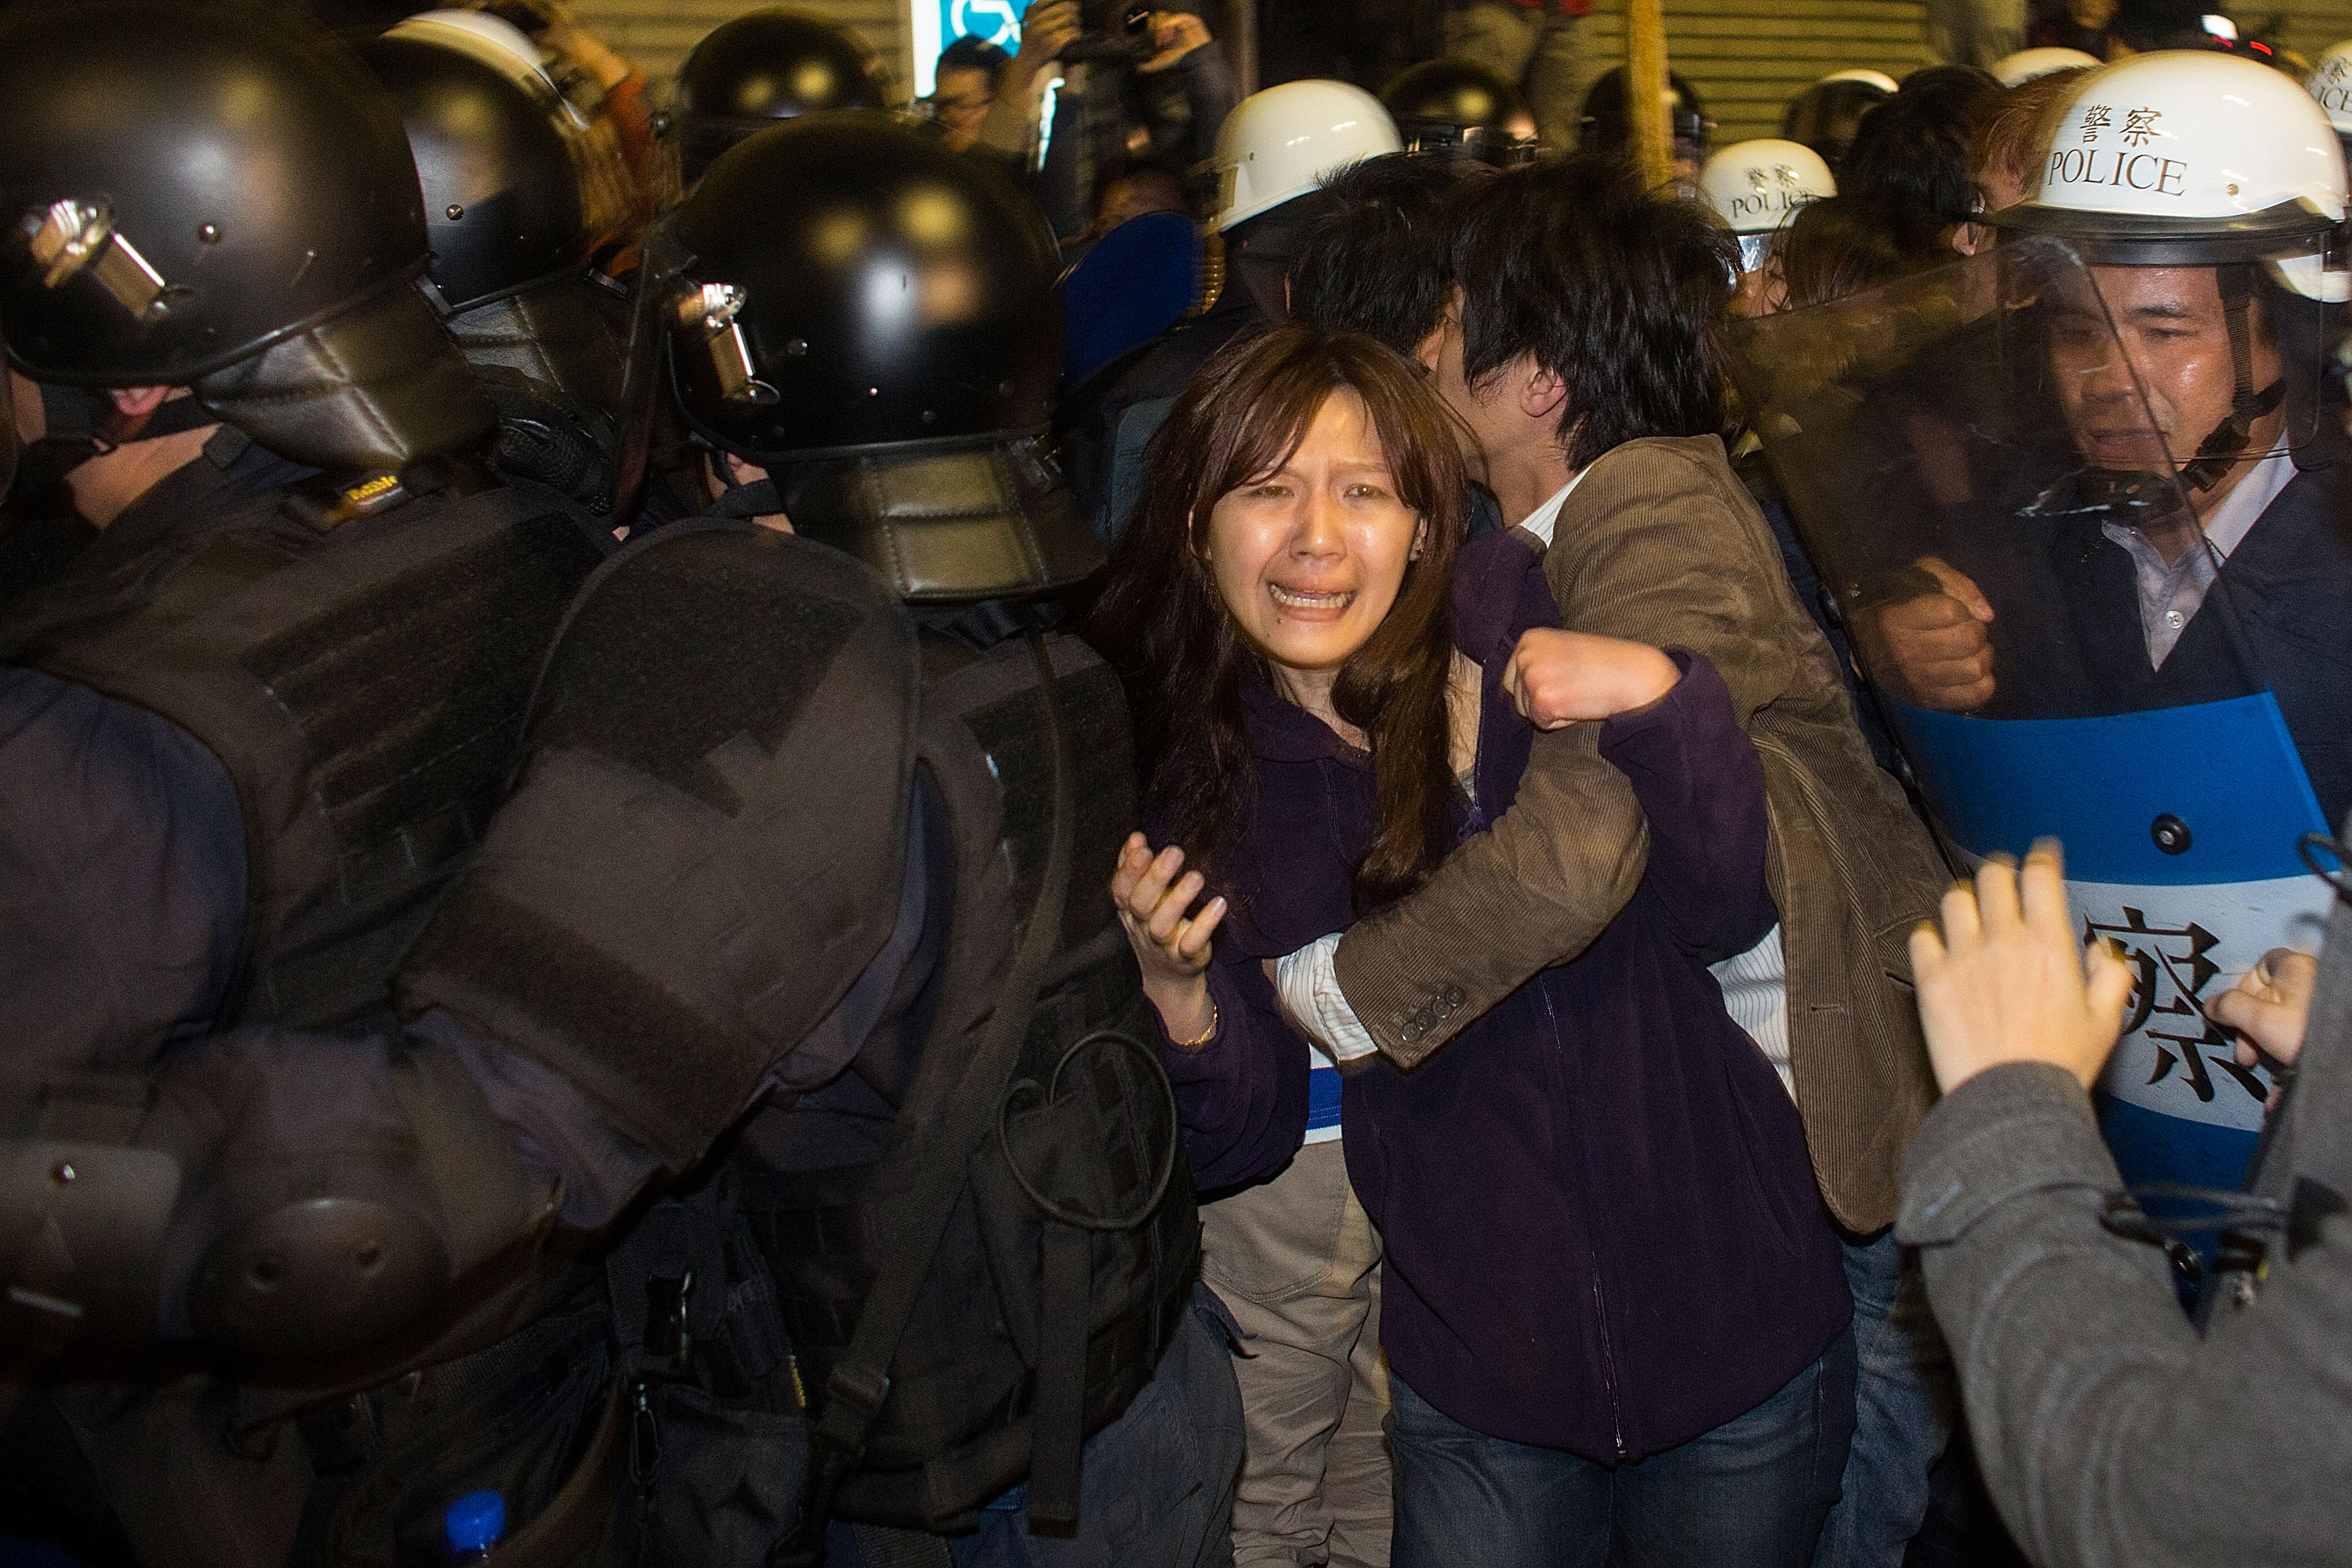 Riot police clash with student protesters outside Taiwan's cabinet offices in Taipei on March 24, 2014. Clashes erupted after Taiwan's President refused to scrap a contentious trade agreement with China and denounced the  illegal  occupation of government buildings by students opposed to its ratification